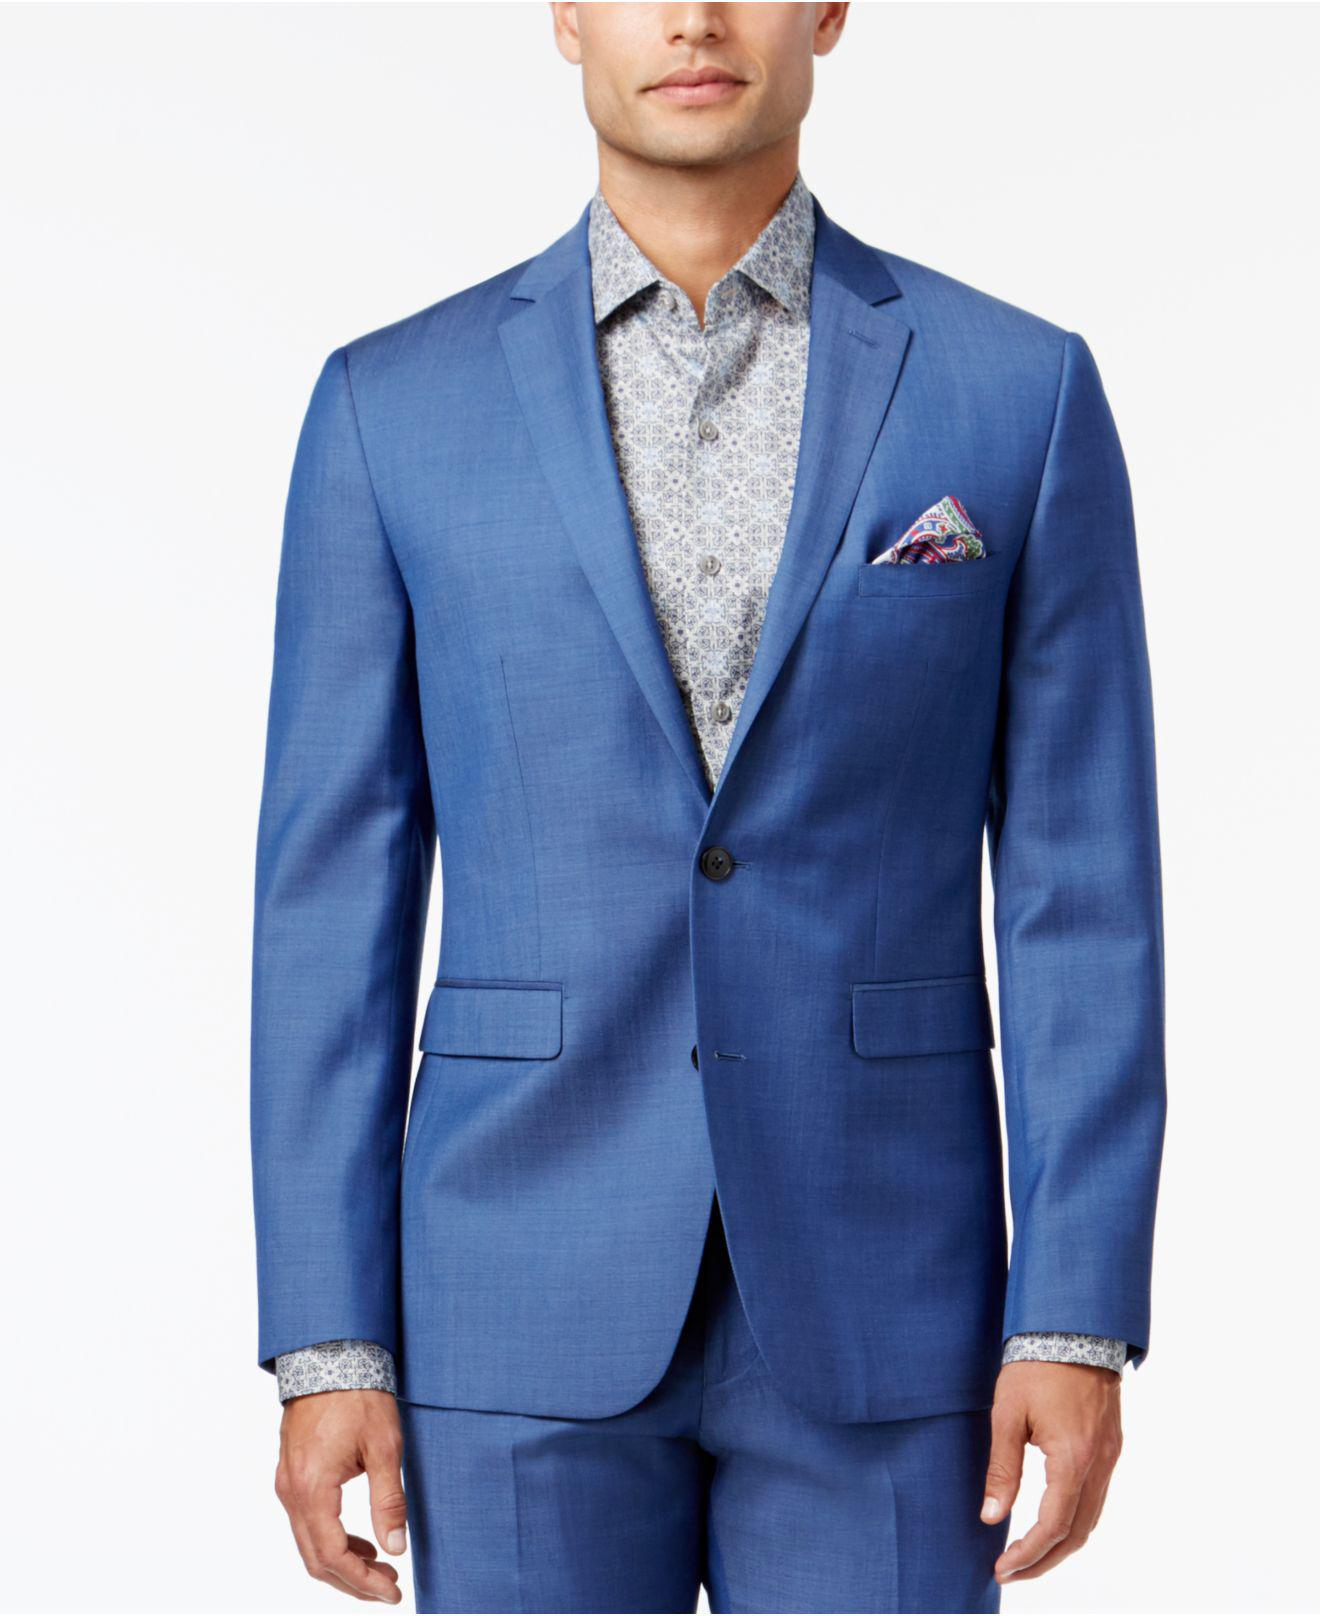 30235d26b2 Vince Camuto Men s Slim-fit Medium Blue Chambray Suit in Blue for ...